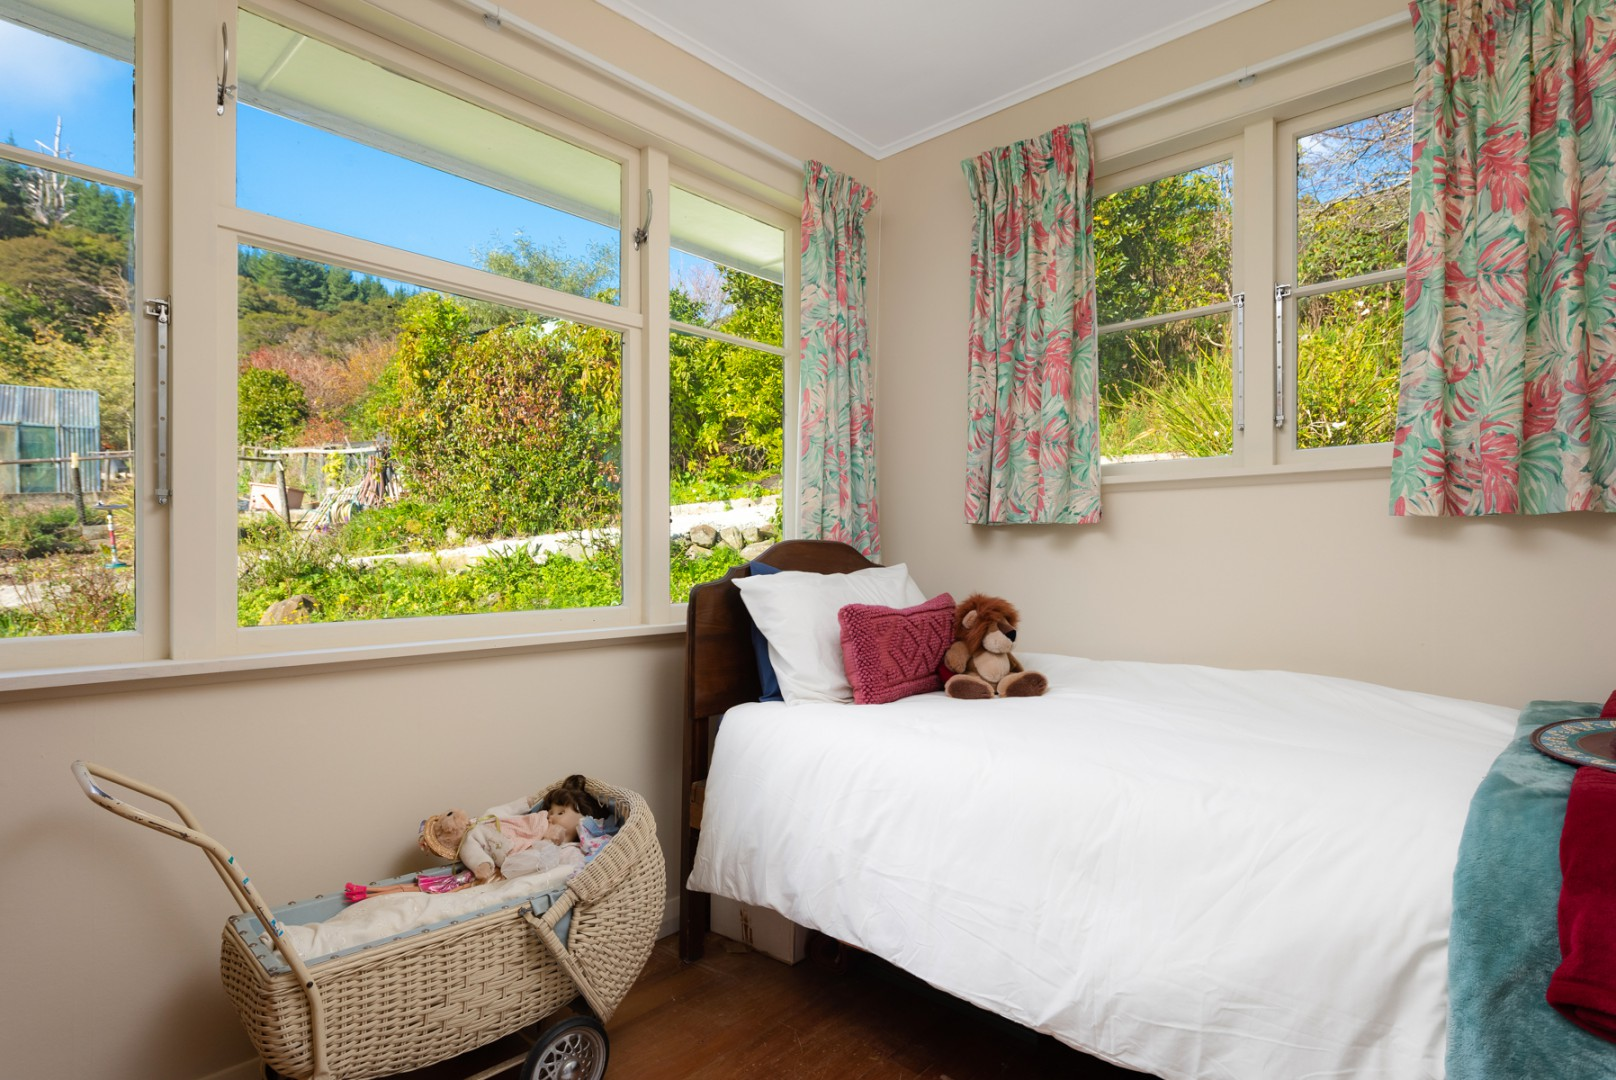 1100 Elie Bay Road - Crail Bay, Marlborough Sounds #12 -- listing/11168/k-v2.jpeg